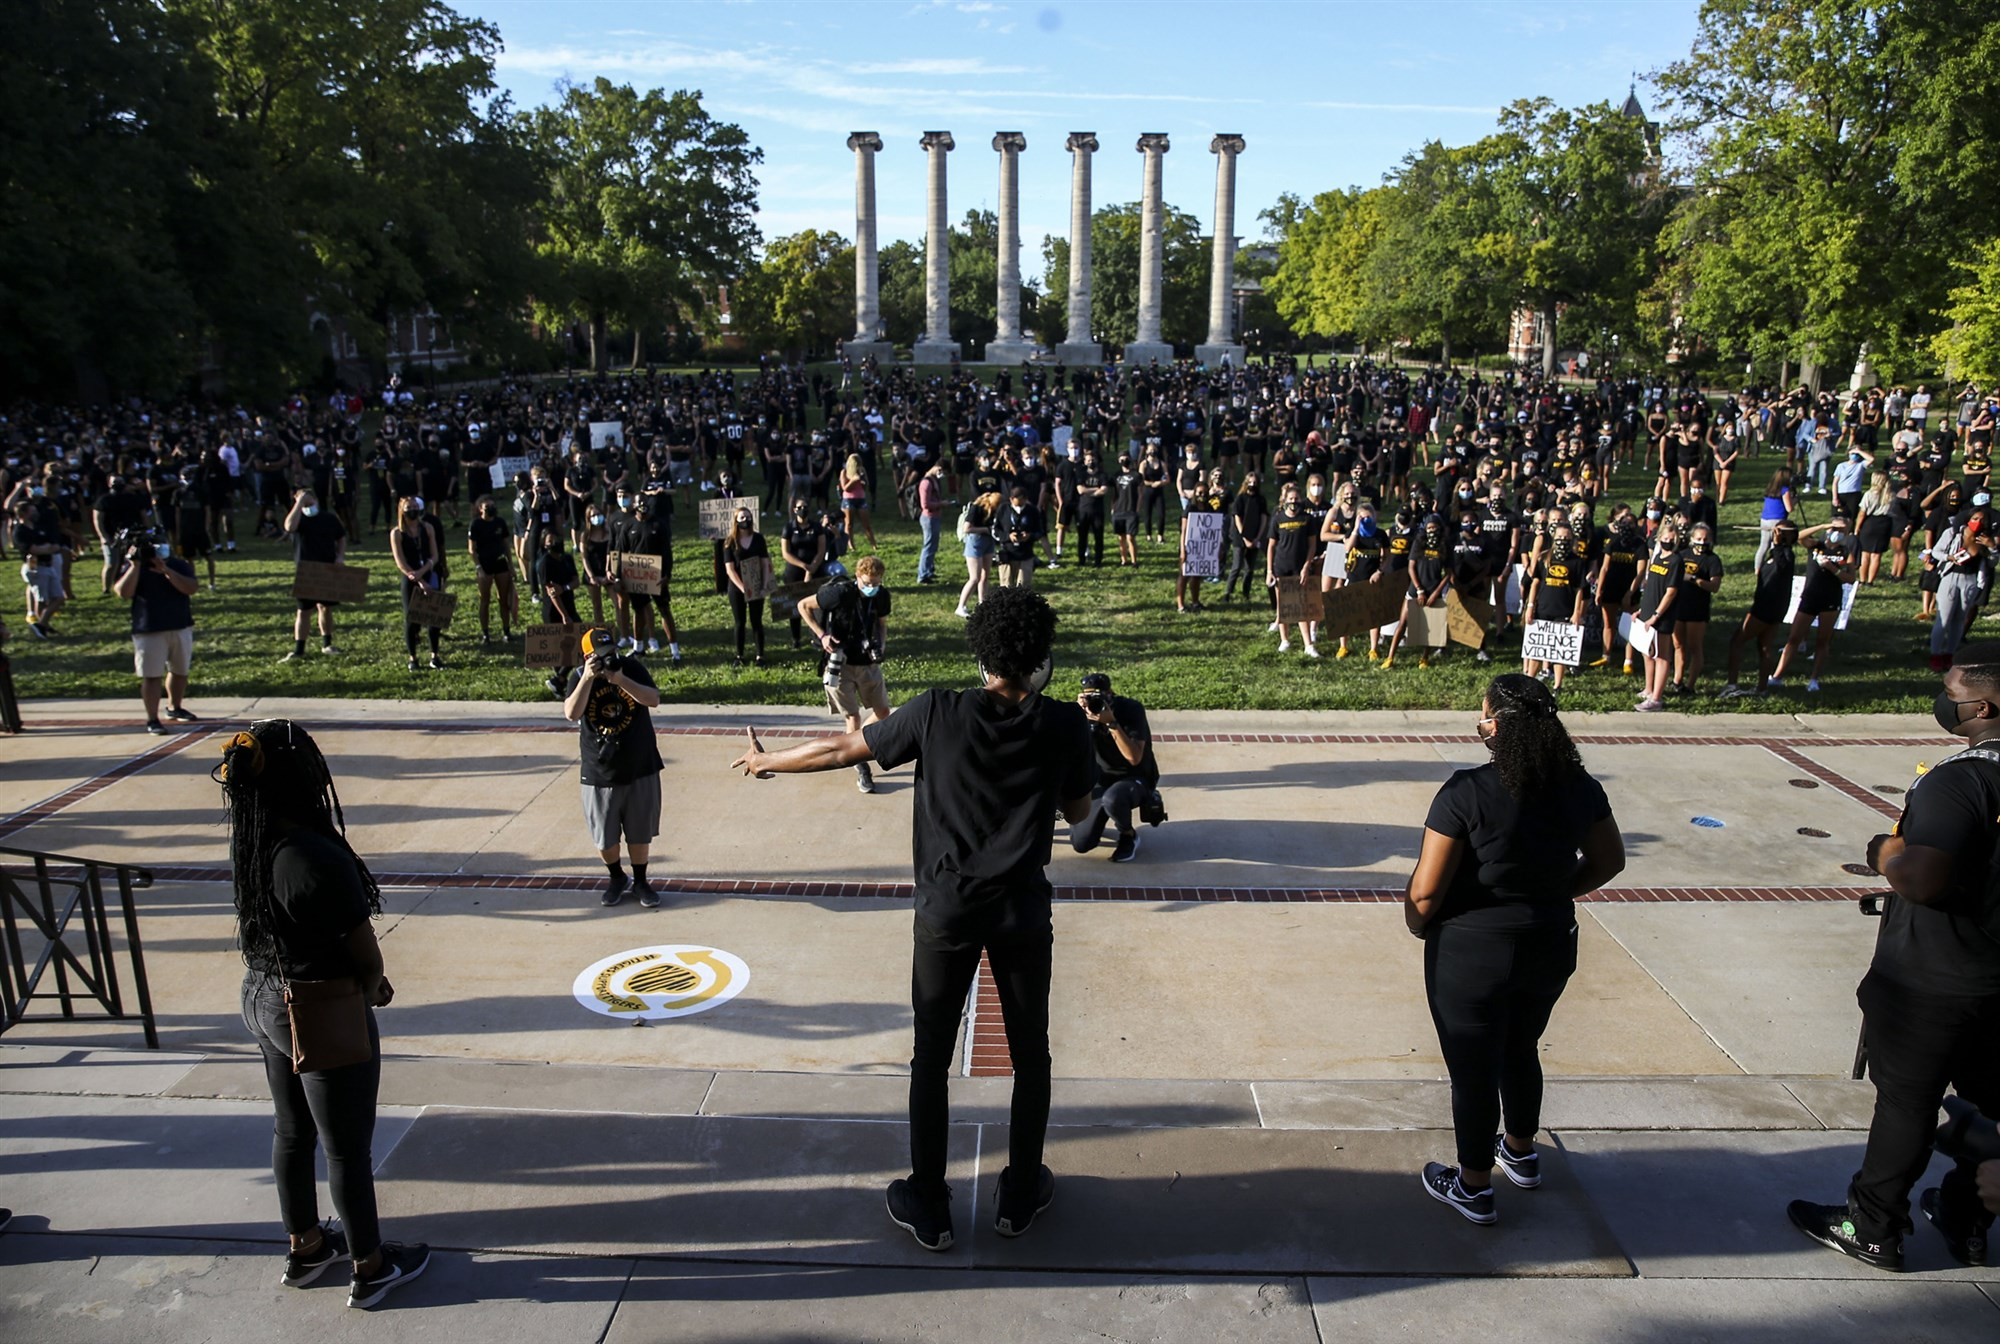 University of Missouri president unblocks students on Twitter after backlash and lawsuit threat